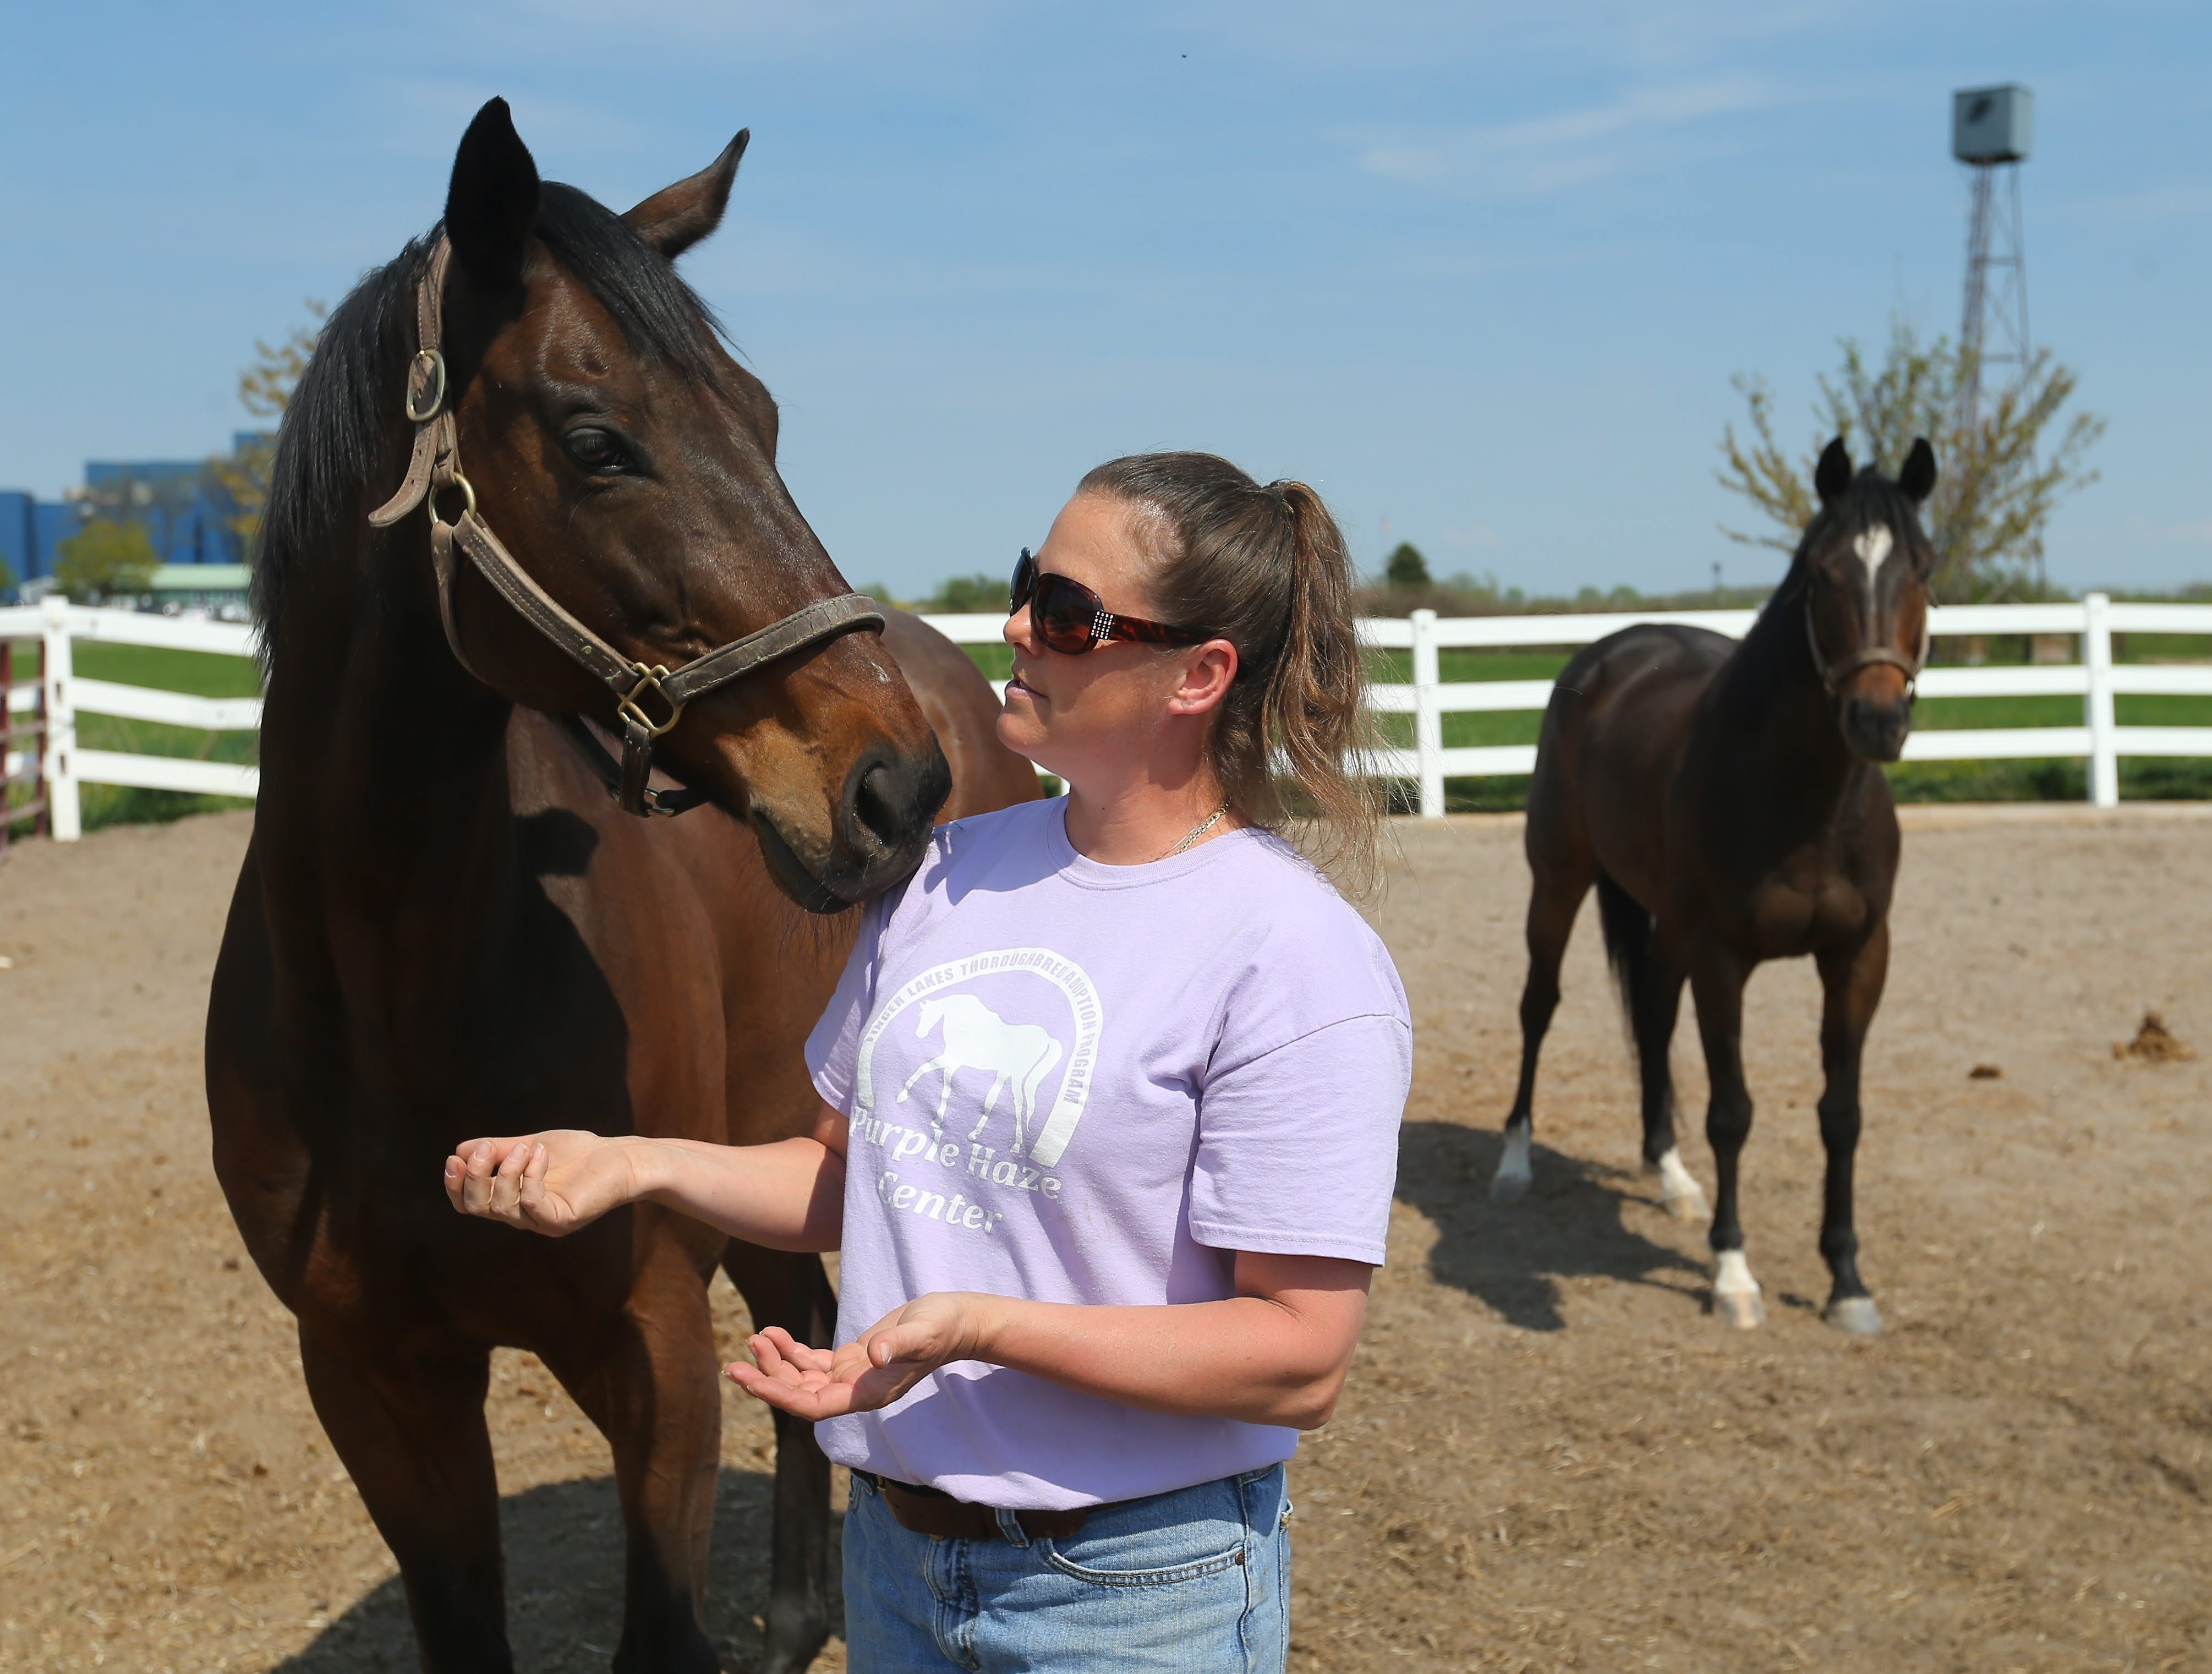 Thoroughbred adoption program director Julie Kisielewski spends some time with former racehorse 50 Cent on the grounds of Finger Lakes Gaming & Racing in Farmington on Friday.